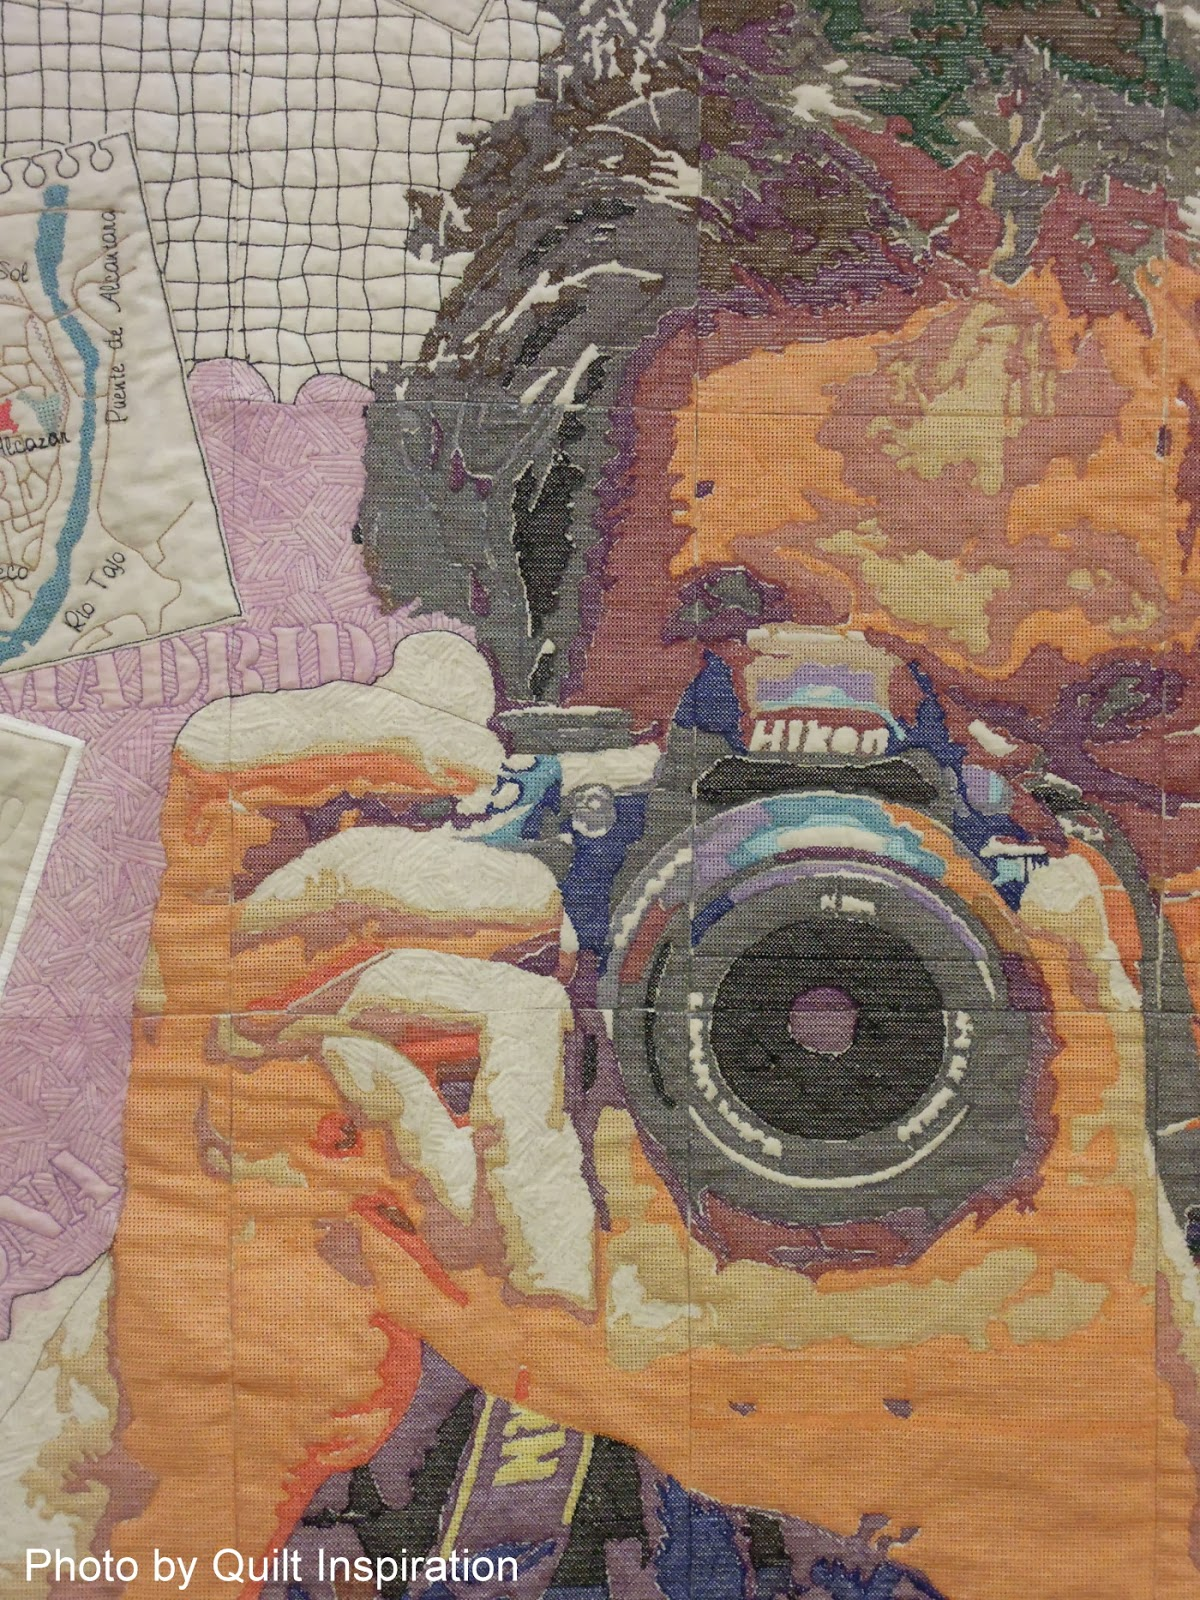 Award Winning Quilts From The Houston International Quilt Festival